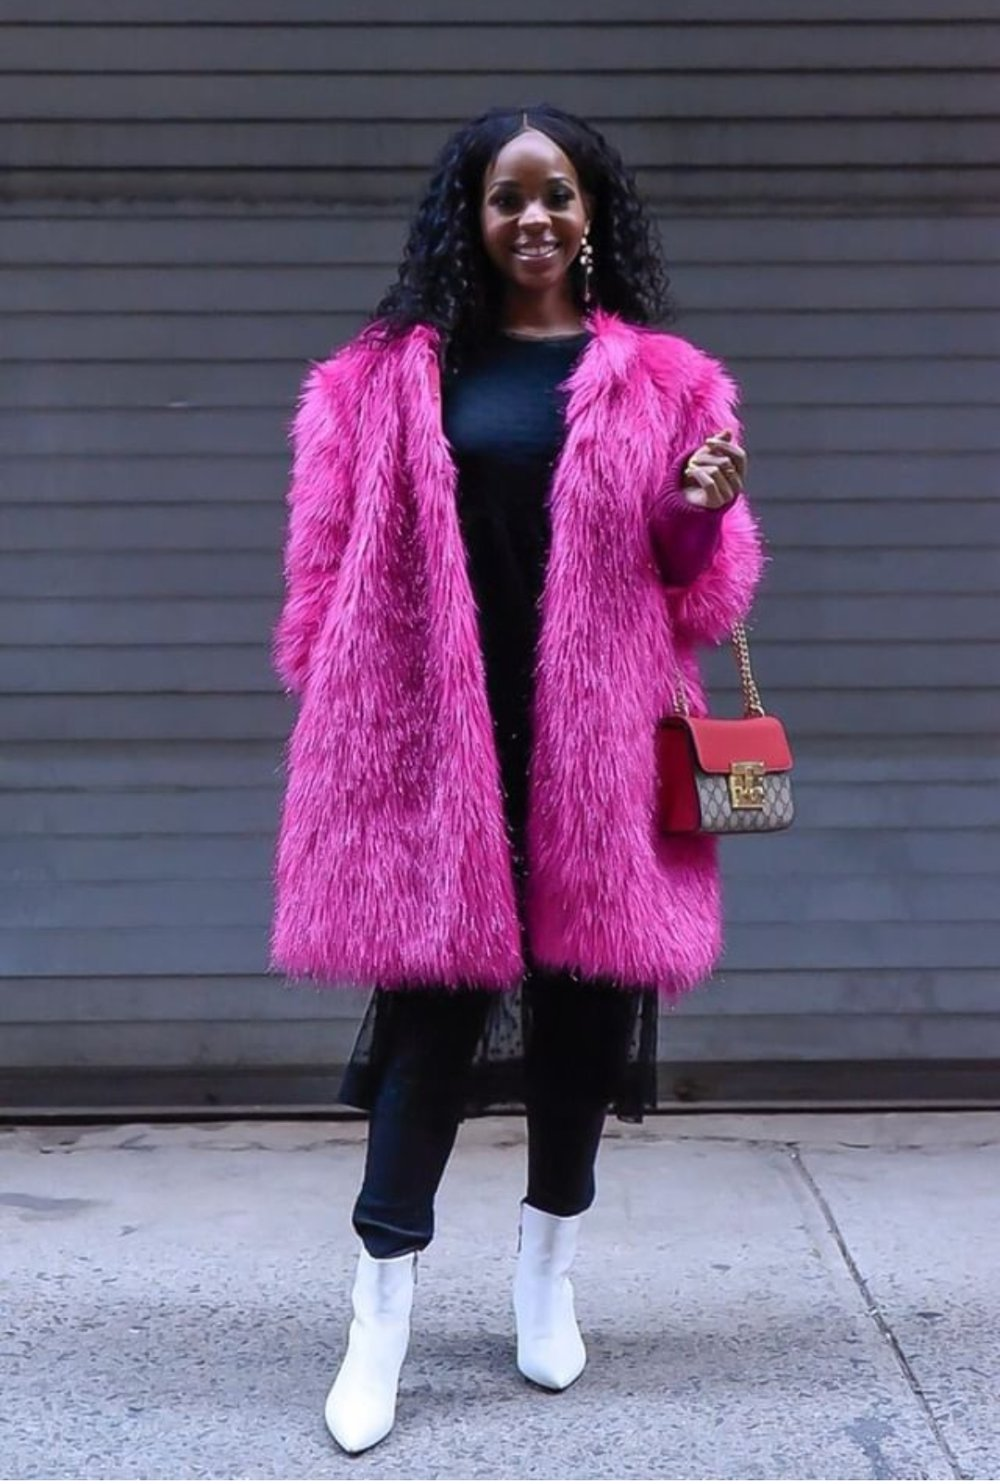 Pink Statement Coat Fashion Week.jpeg